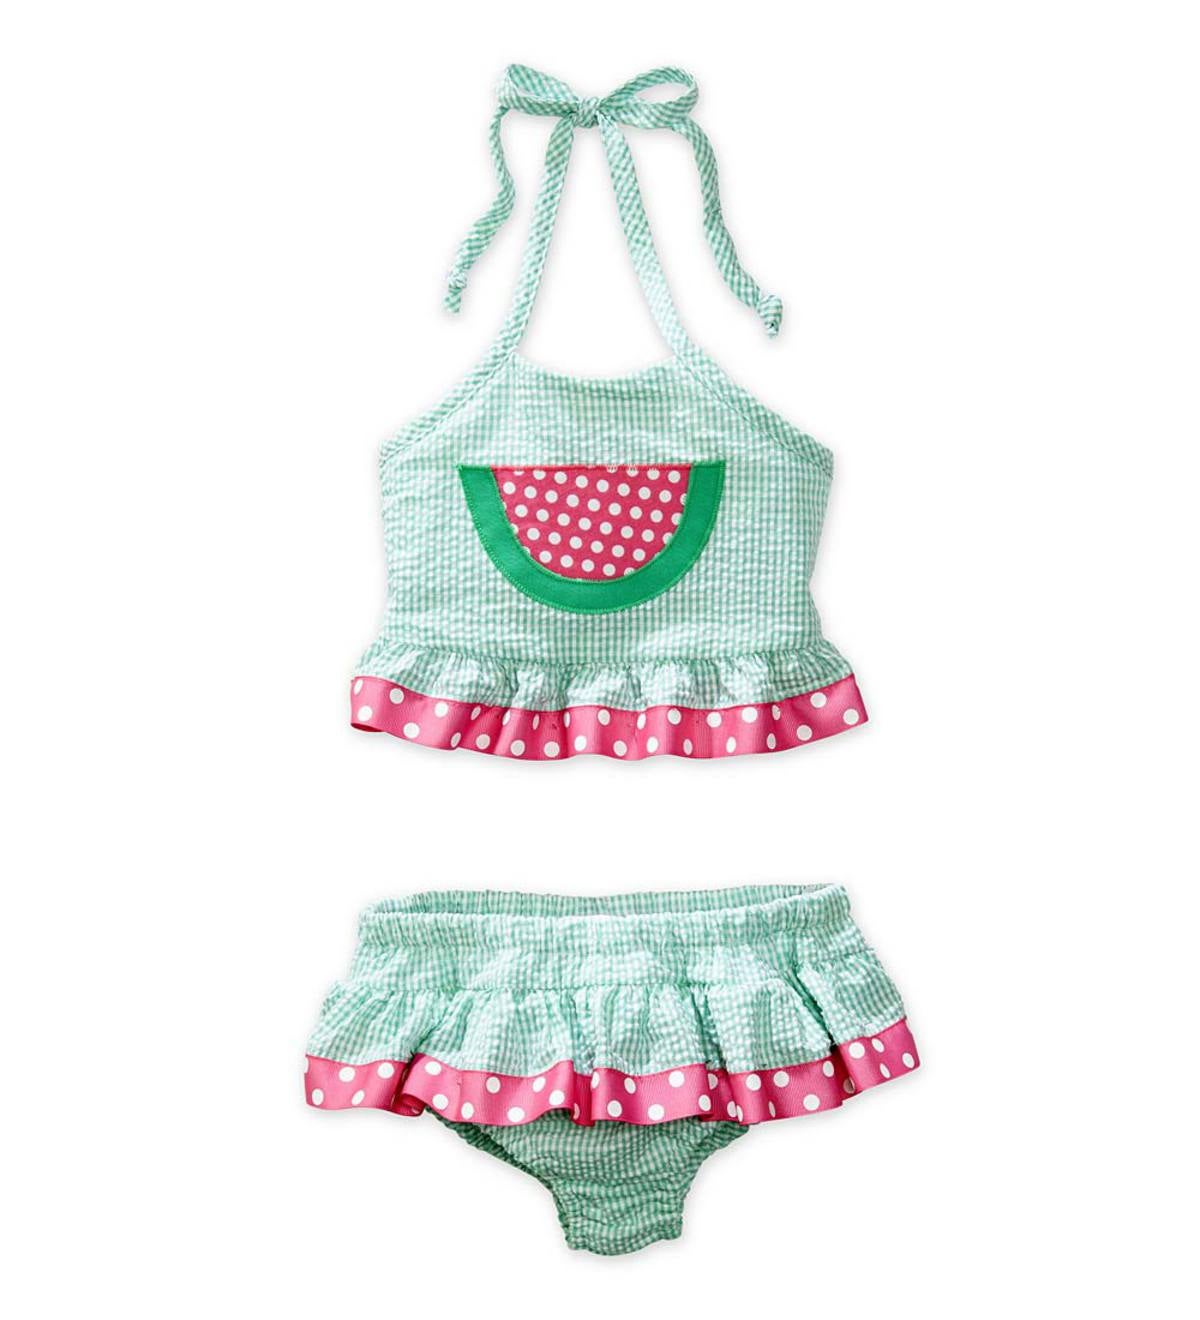 Gingham Watermelon Two-Piece Swimsuit - Green - 3T